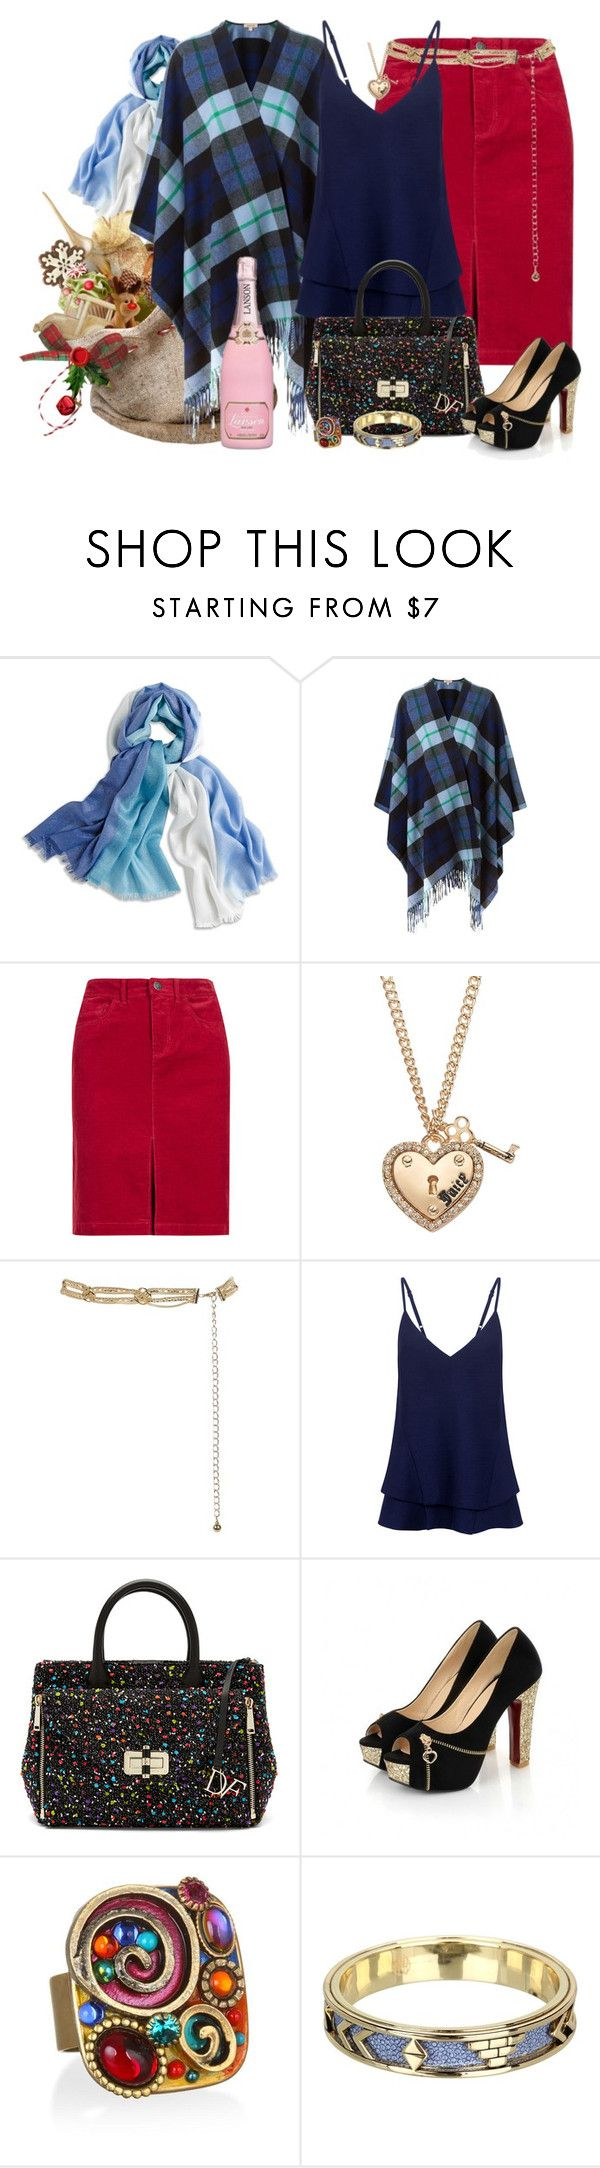 """""""Santa Claus is Coming to Town"""" by winscotthk ❤ liked on Polyvore featuring Chico's, P.A.R.O.S.H., Indigo Collection, Juicy Couture, C/MEO COLLECTIVE, Diane Von Furstenberg and House of Harlow 1960"""